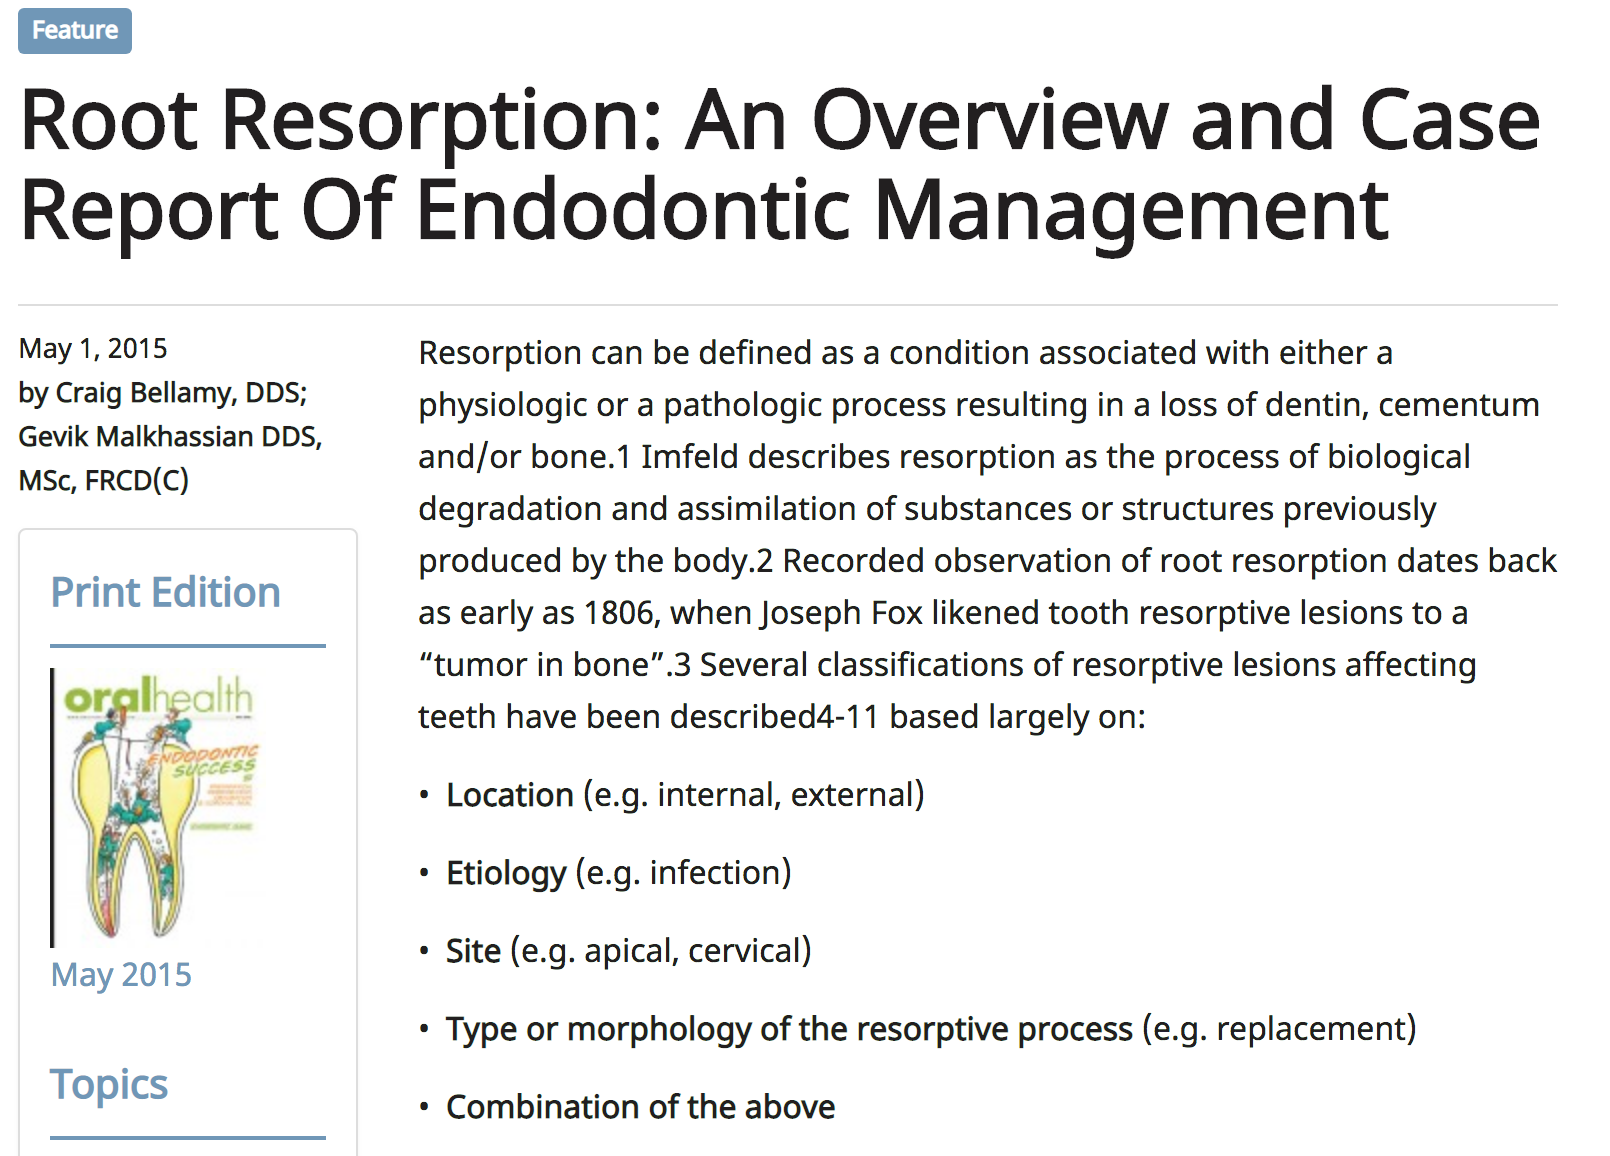 Dr. Gevik Malkhassian - Root Resorption: An Overview and Case Report Of Endodontic Management